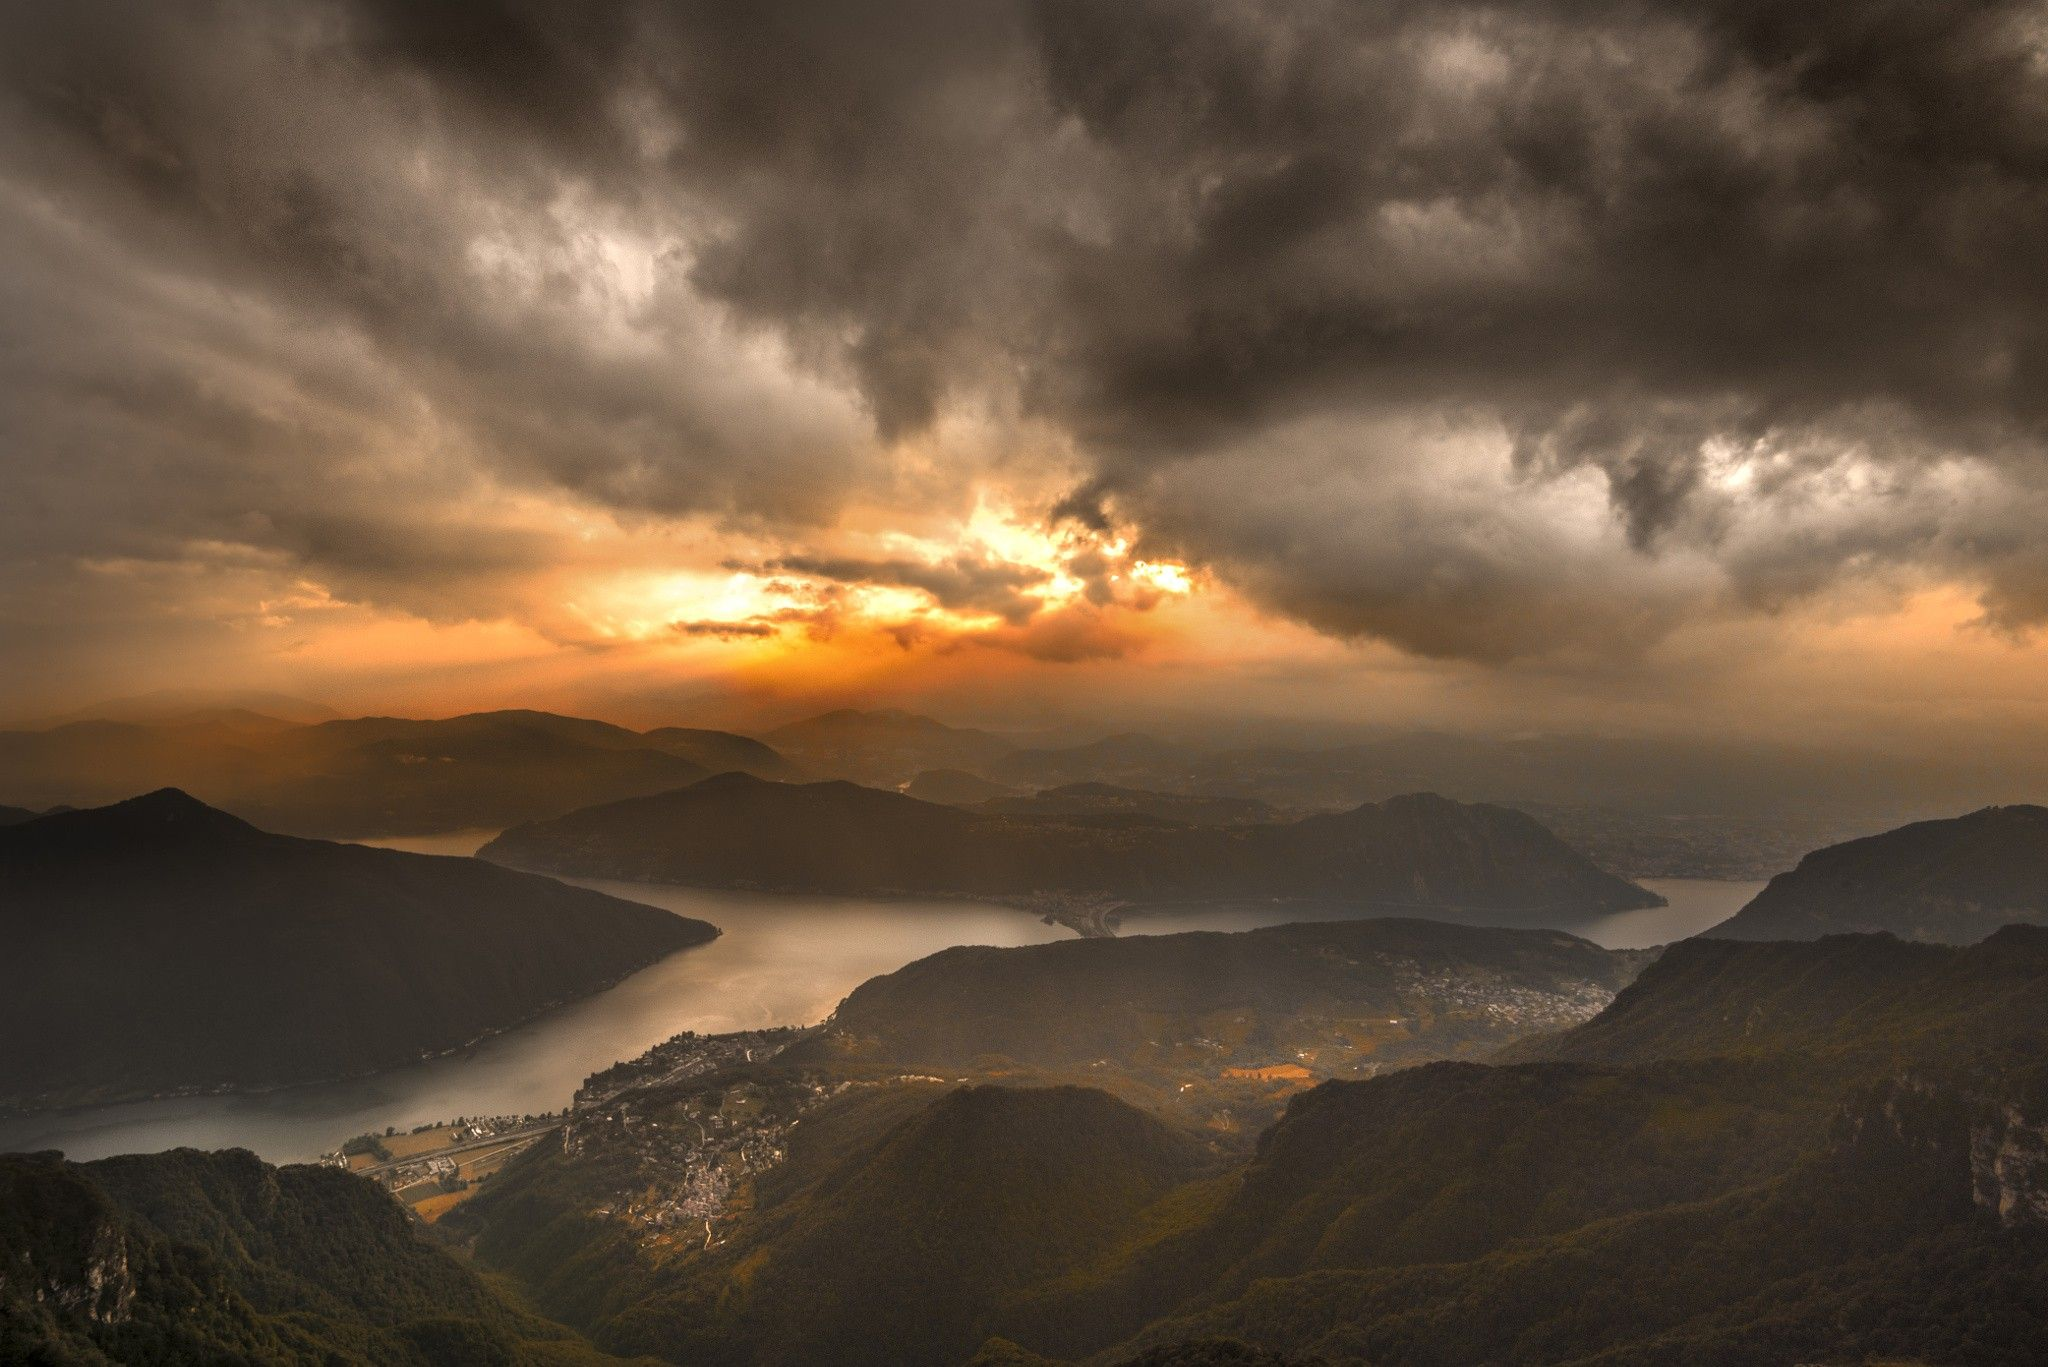 Nature Landscape Mountains Clouds Sunset Mist Far View Photography Wallpapers Hd Desktop And Mobile Backgrounds Landscape Background Photography Wallpaper